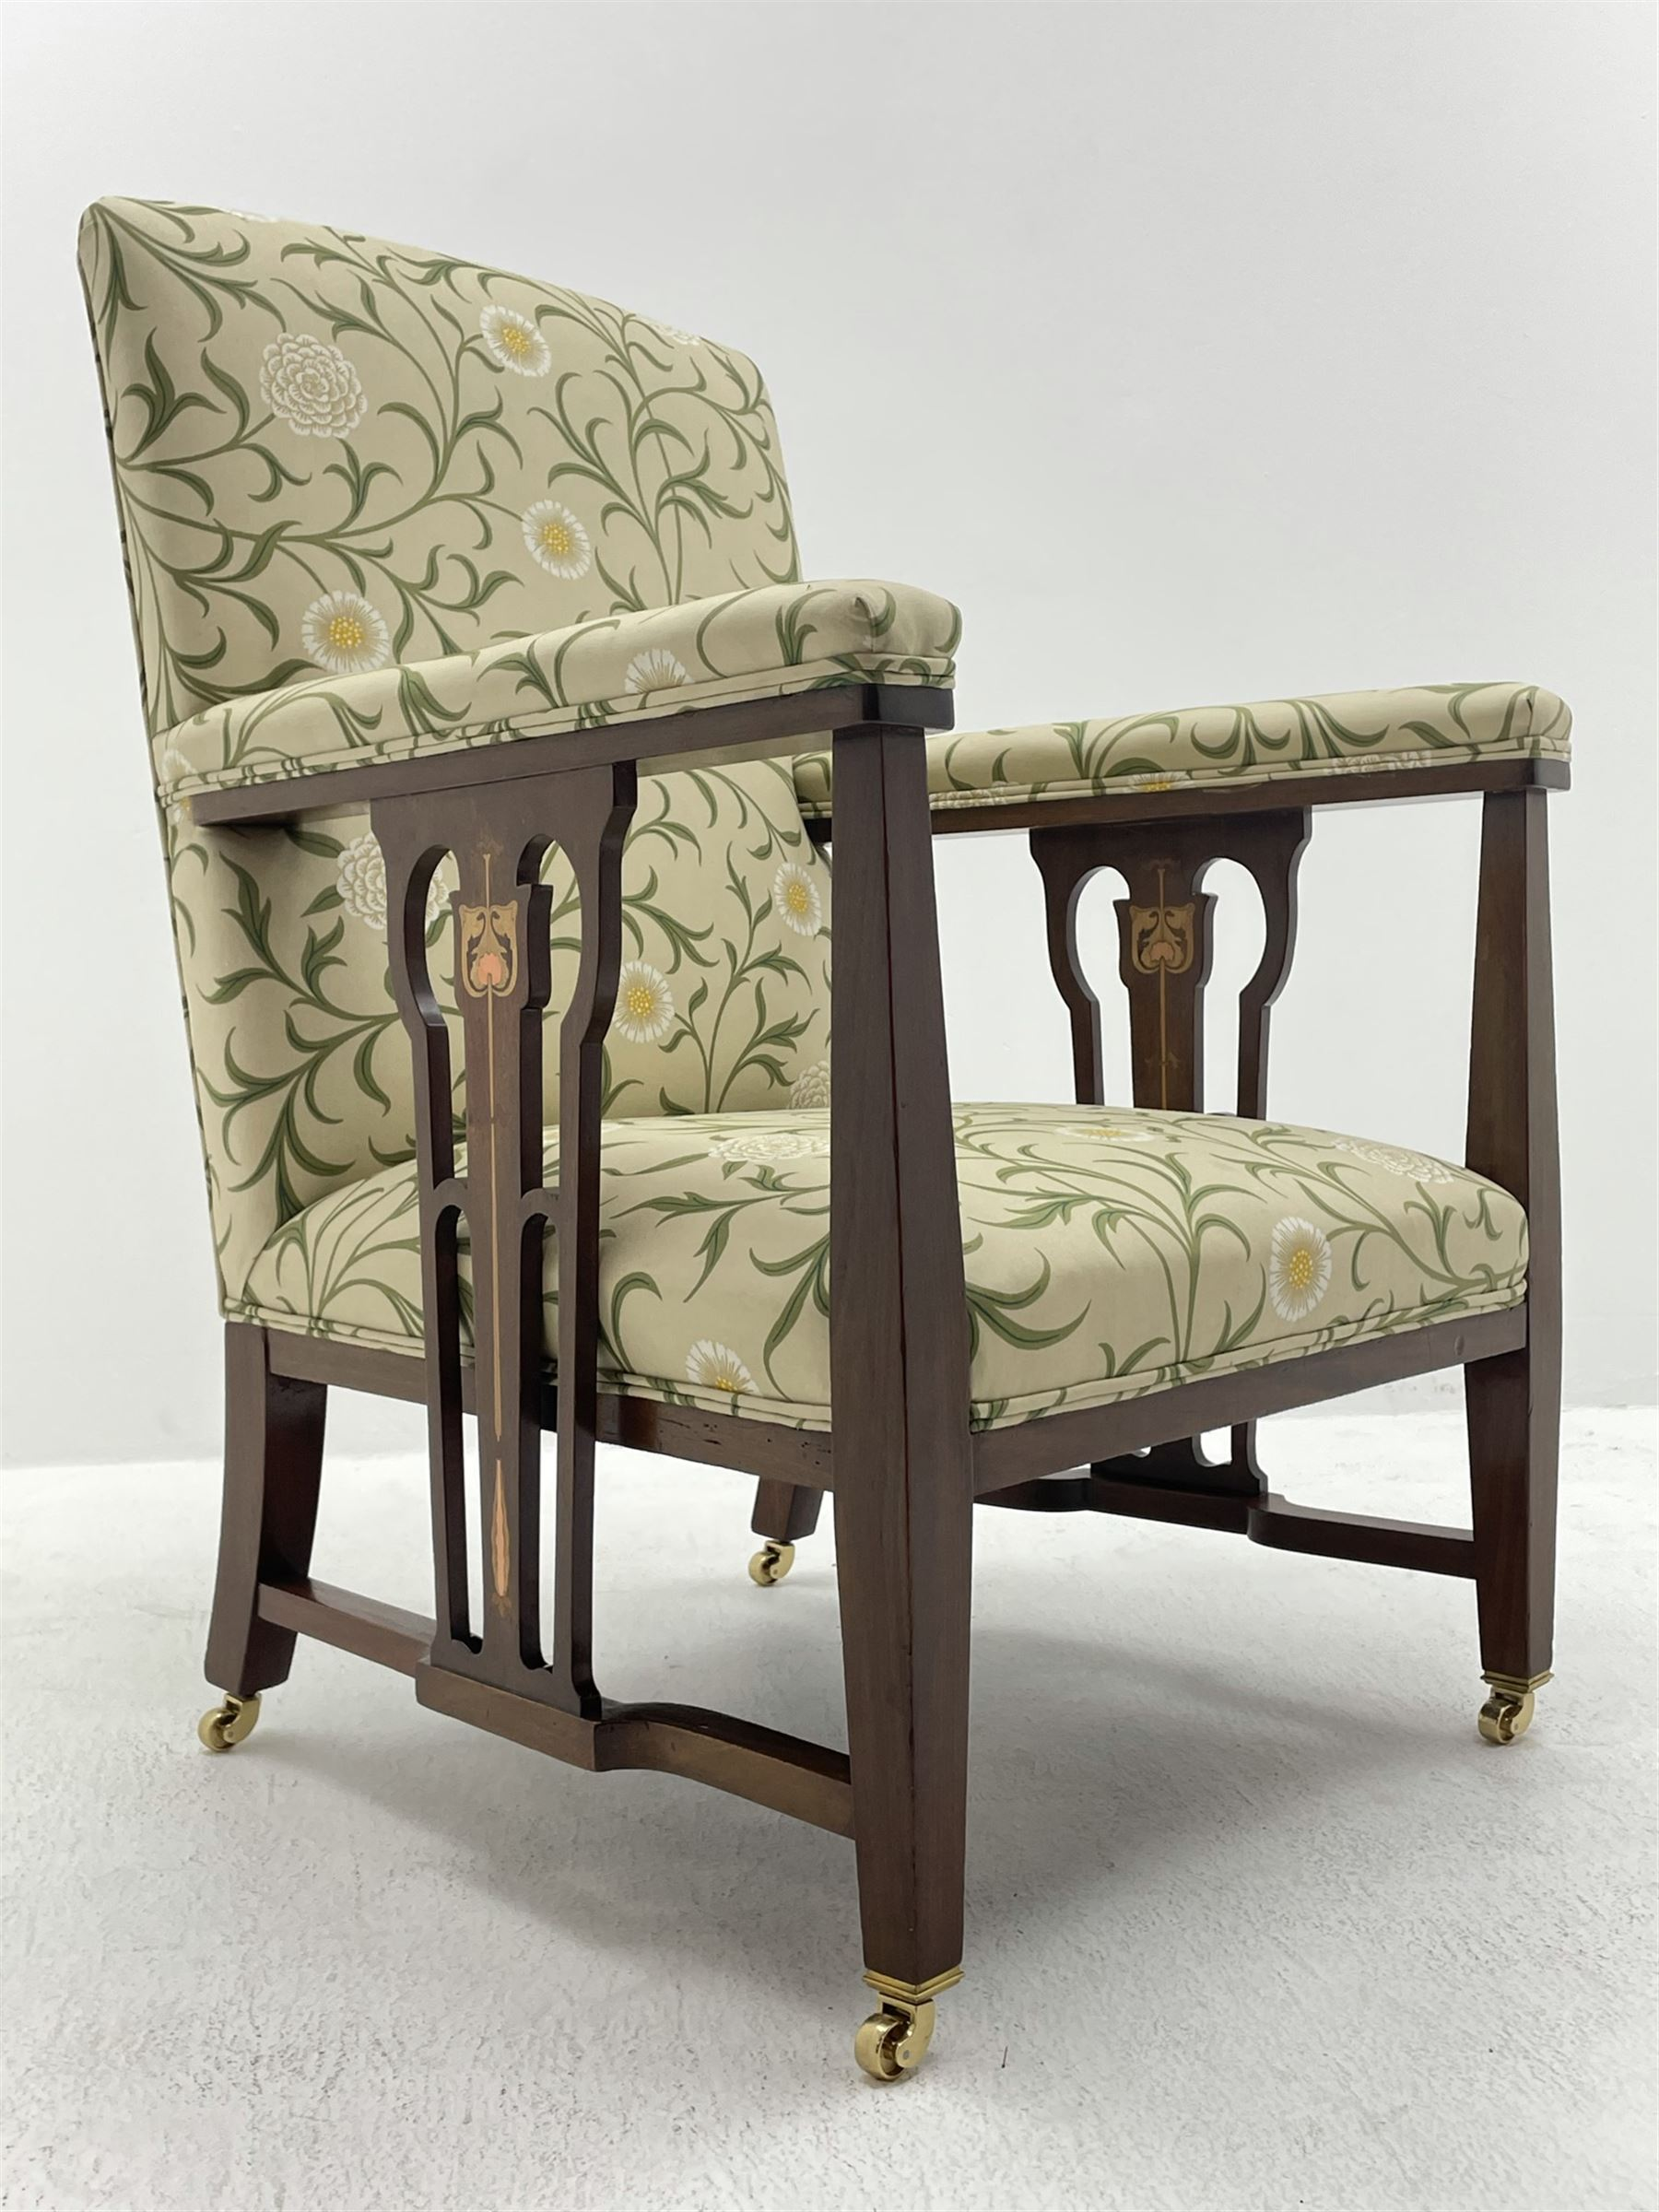 Late 19th century Arts and Crafts mahogany armchair - Image 2 of 7